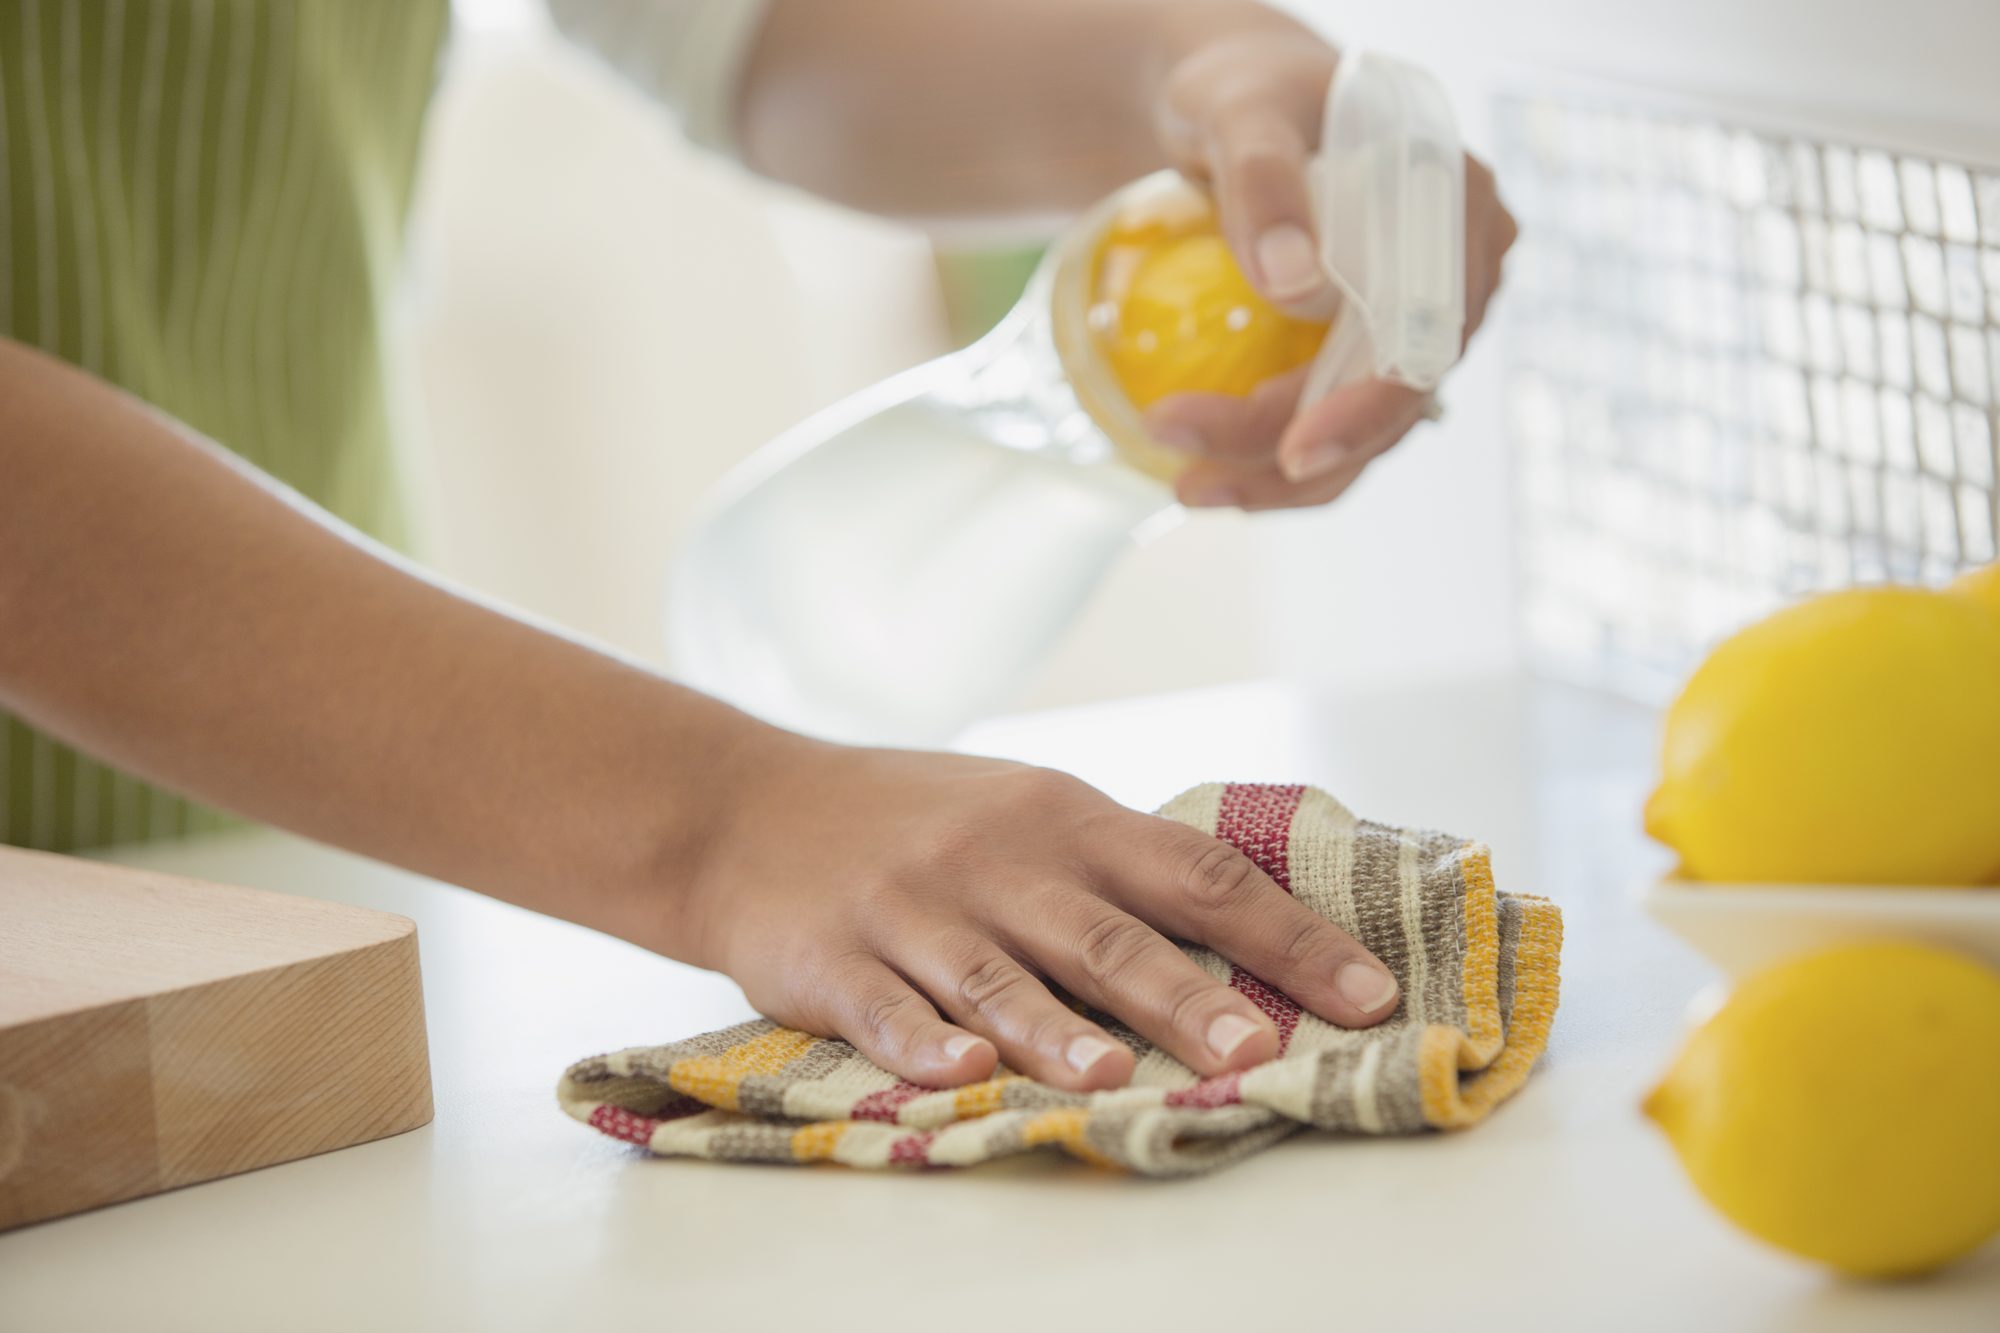 Make Your Own Kitchen Disinfectant with 2 Ingredients